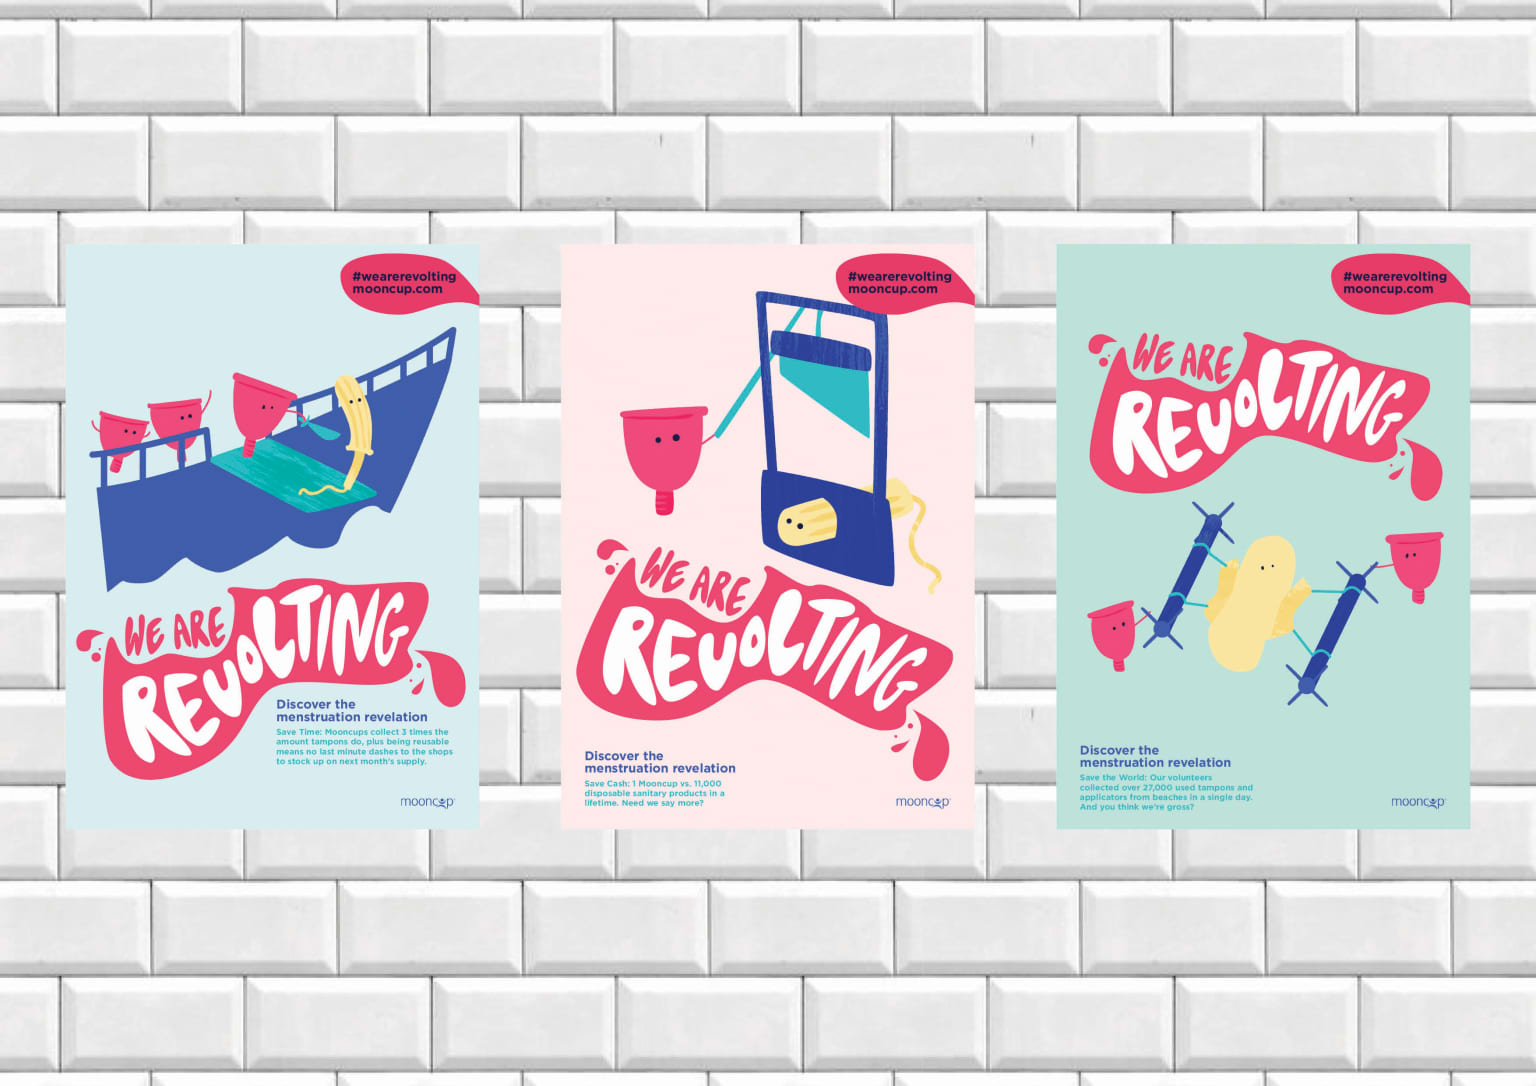 MoonCup - Campaign to reinvent a brand with an image problem